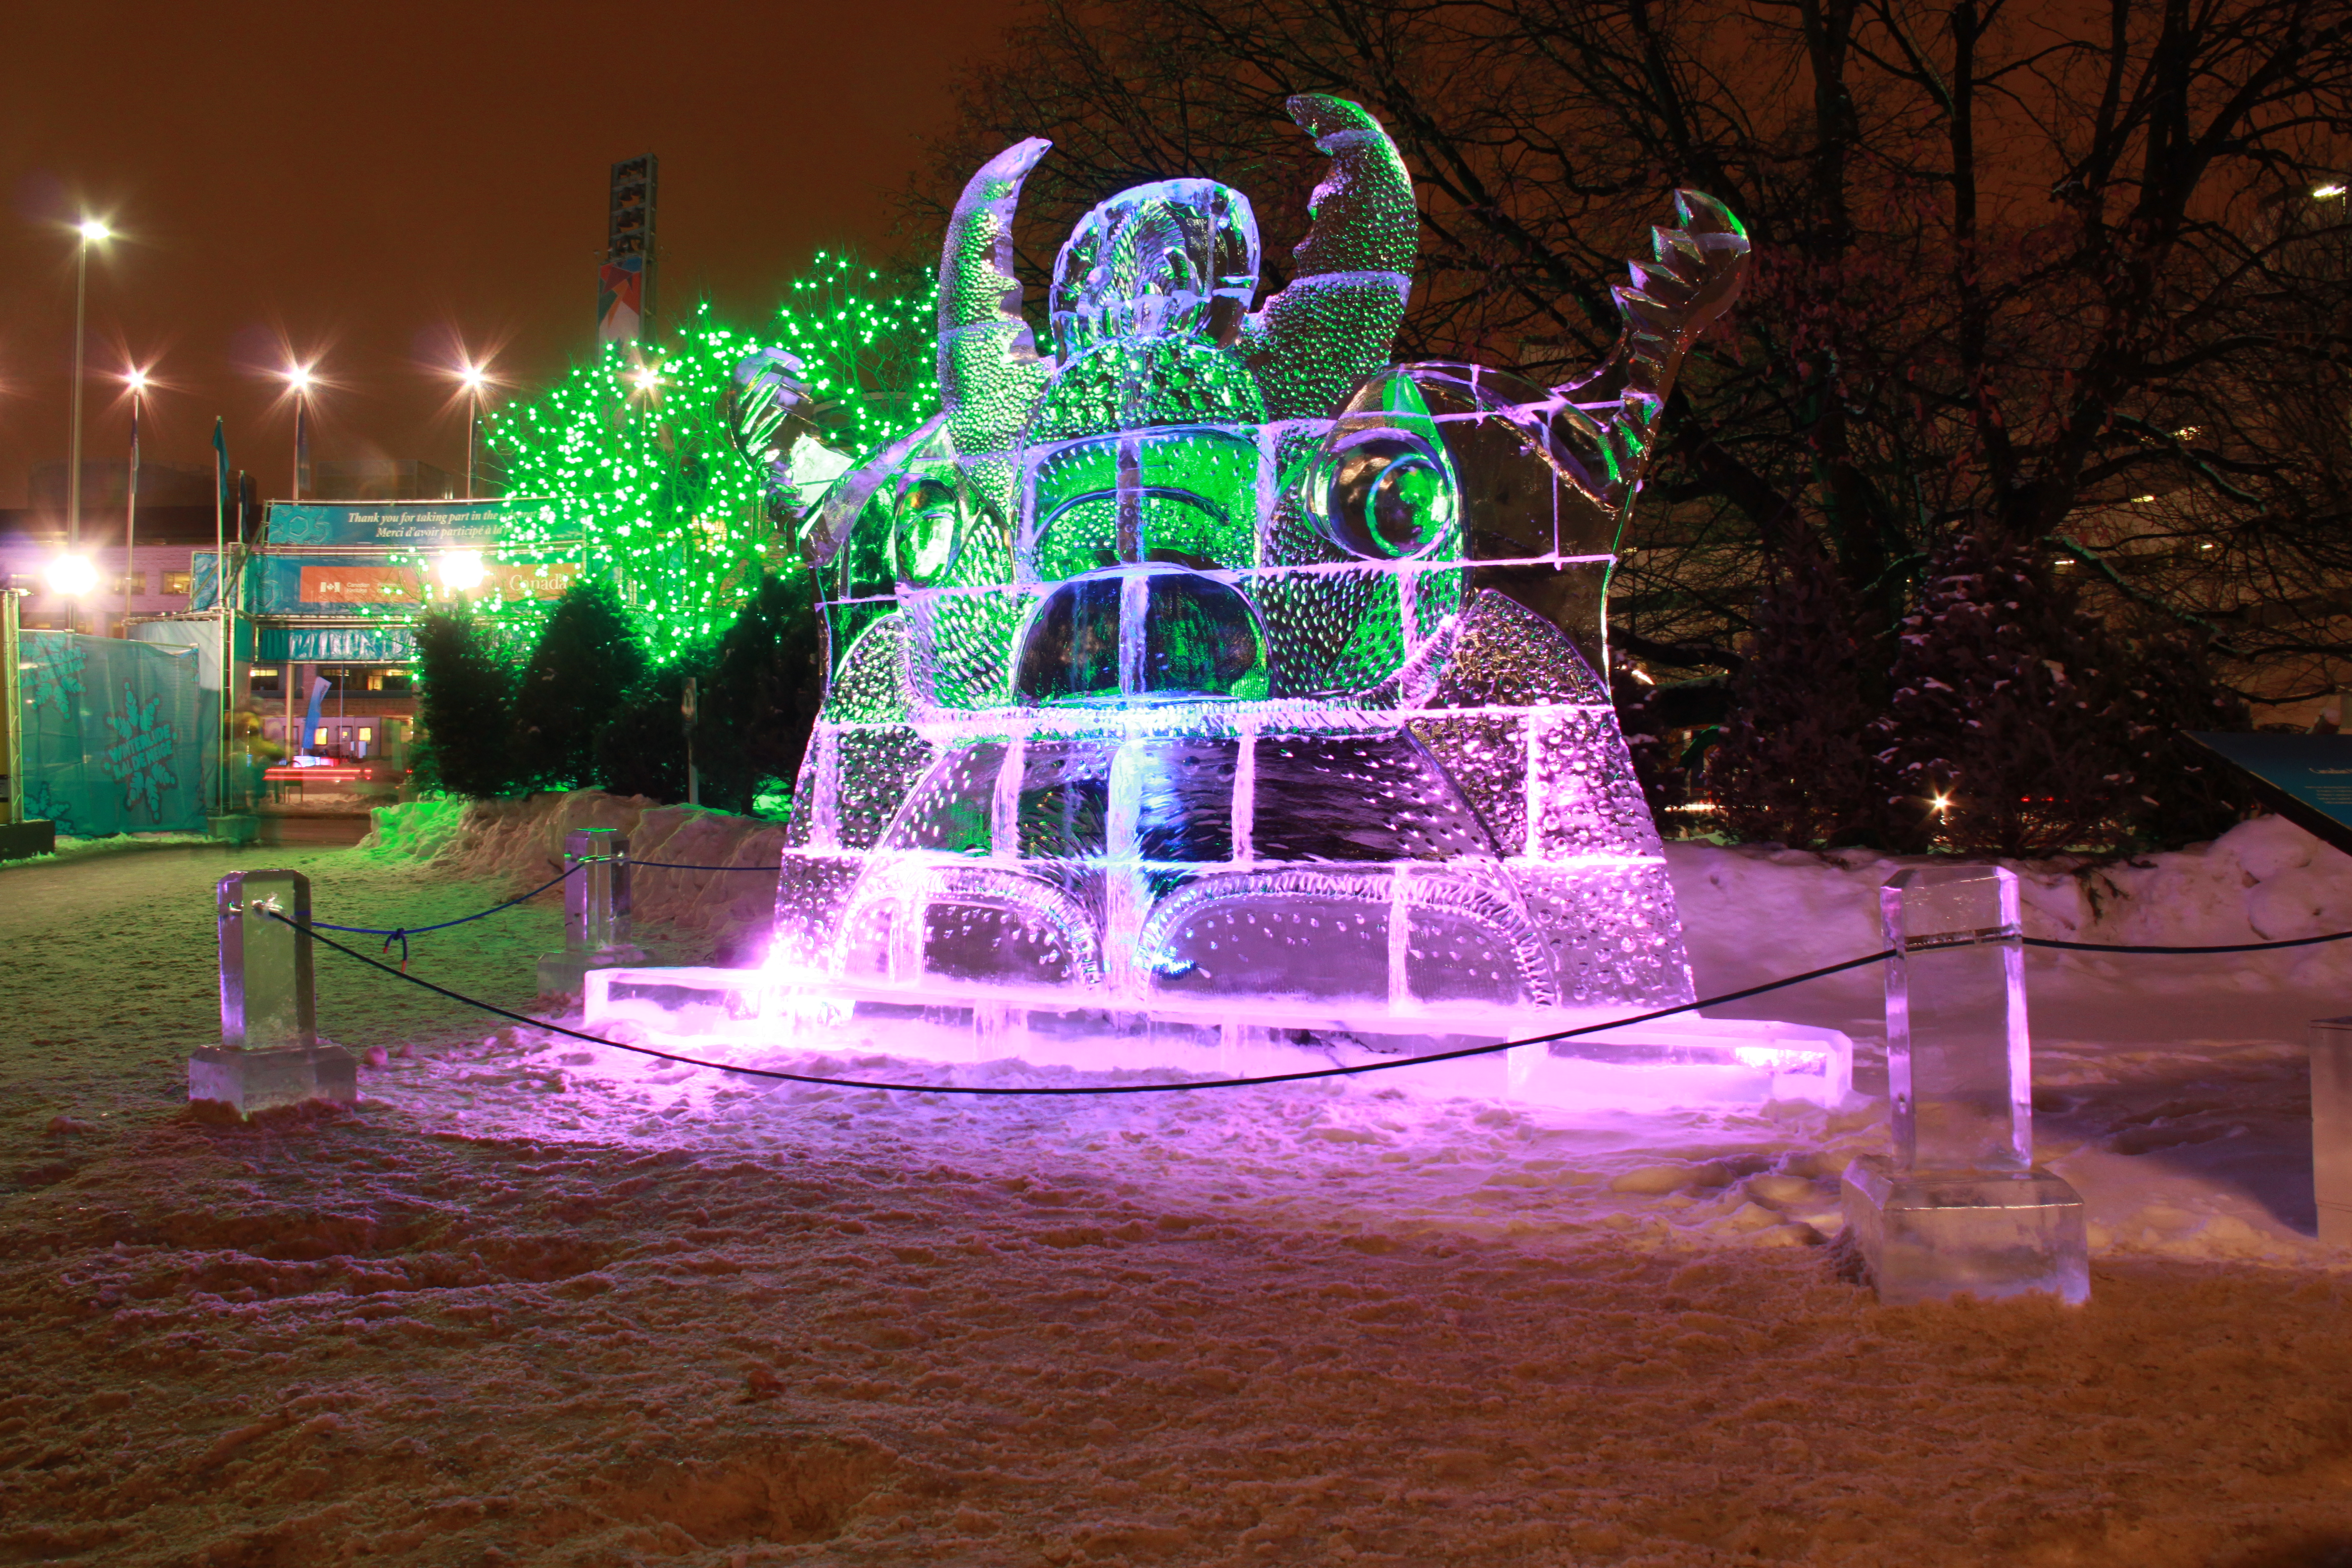 Winterlude Ice sculpture at Confederation Park in Ottawa, Ontario.